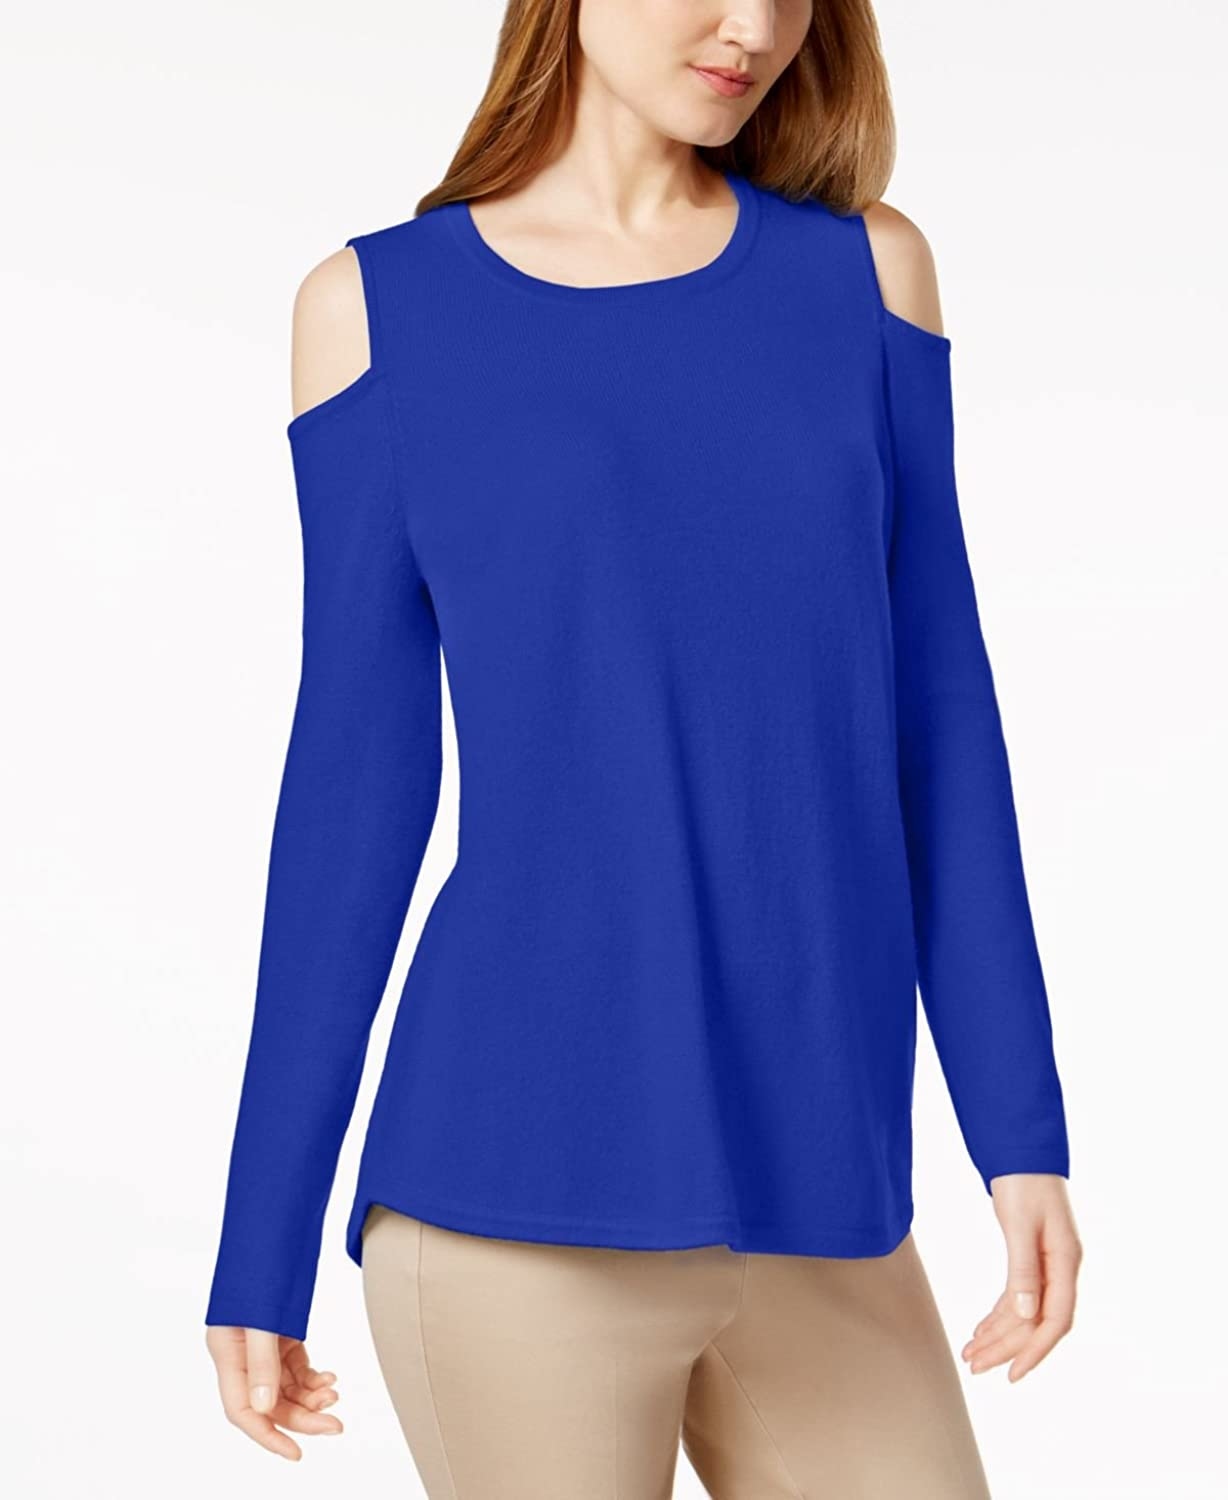 Charter Club Petite 100% Cashmere ColdShoulder Sweater in Bright bluee